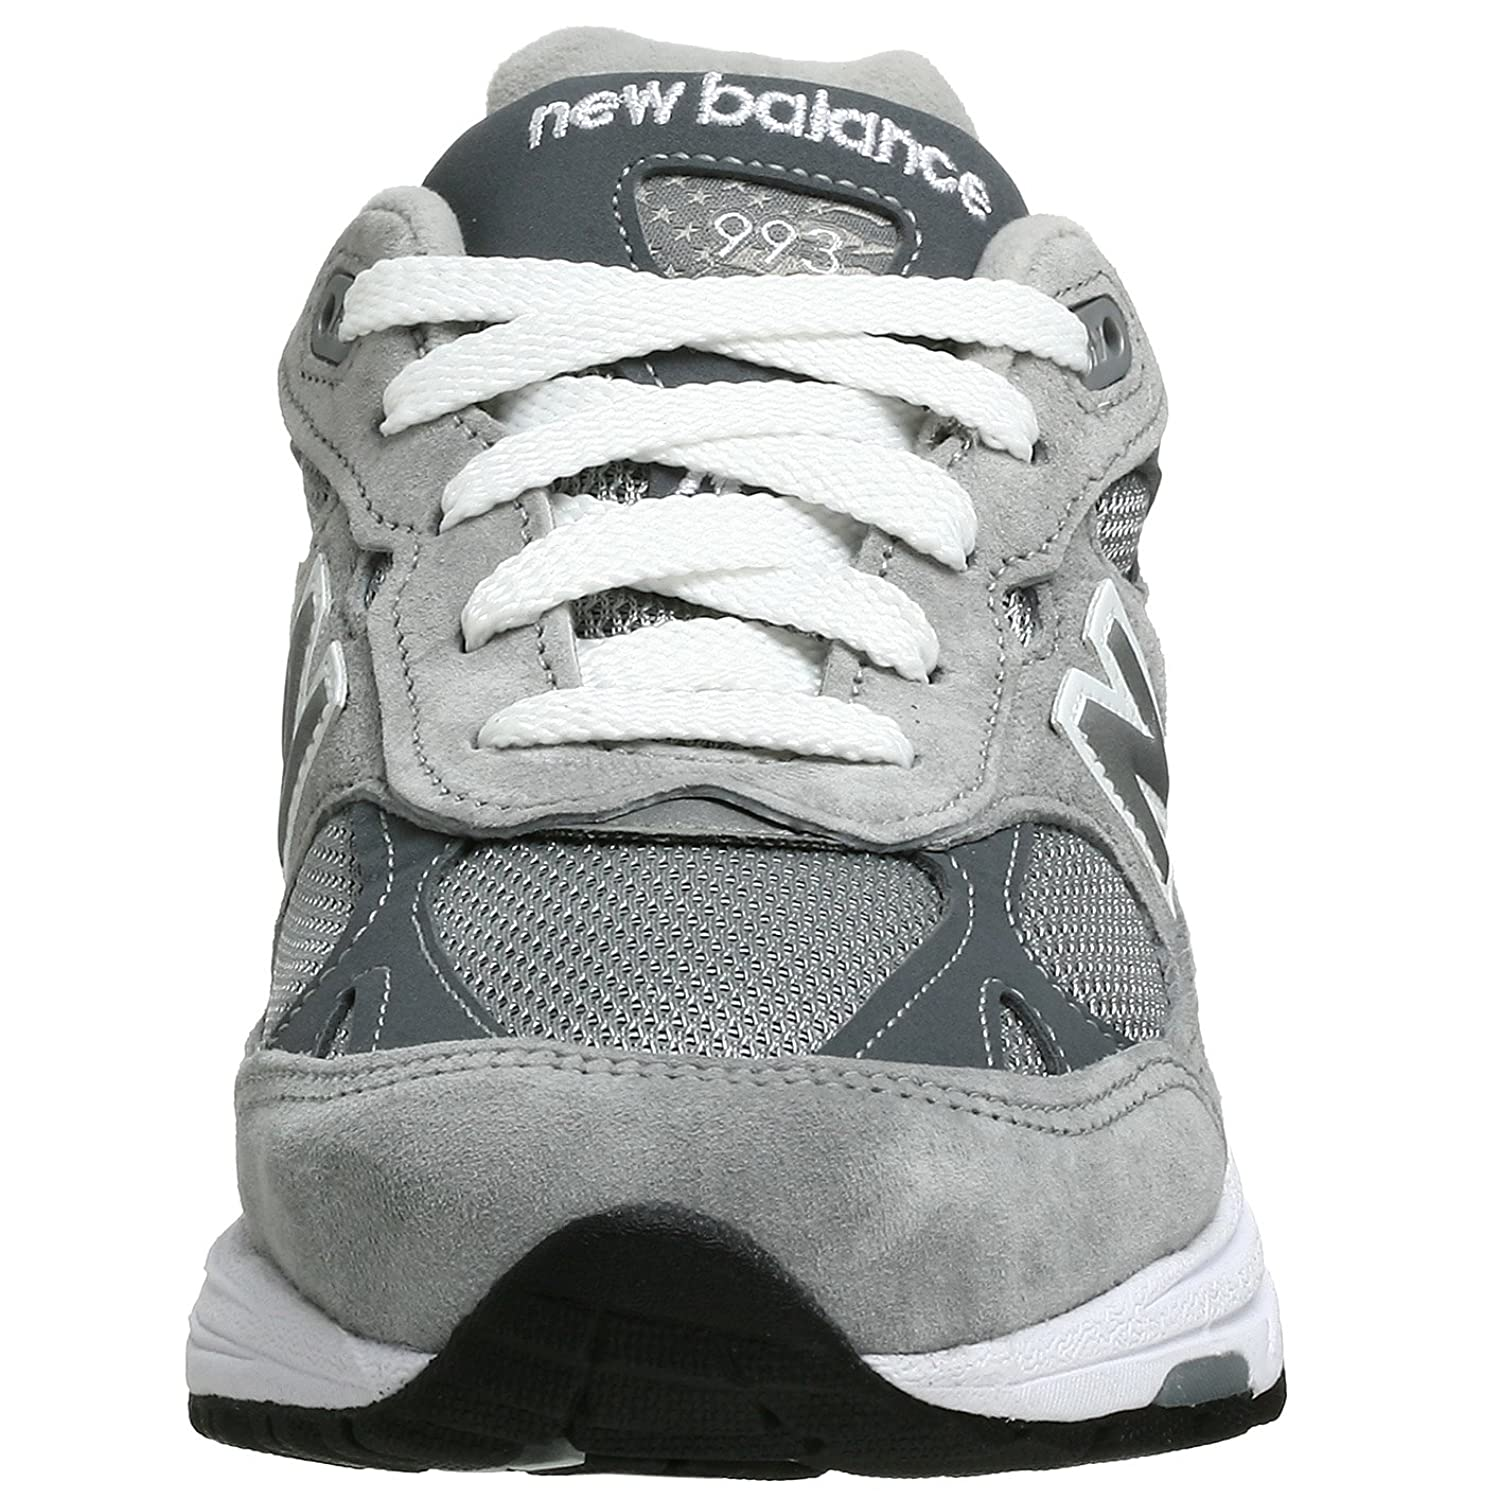 new balance 993 dalmatian puppies